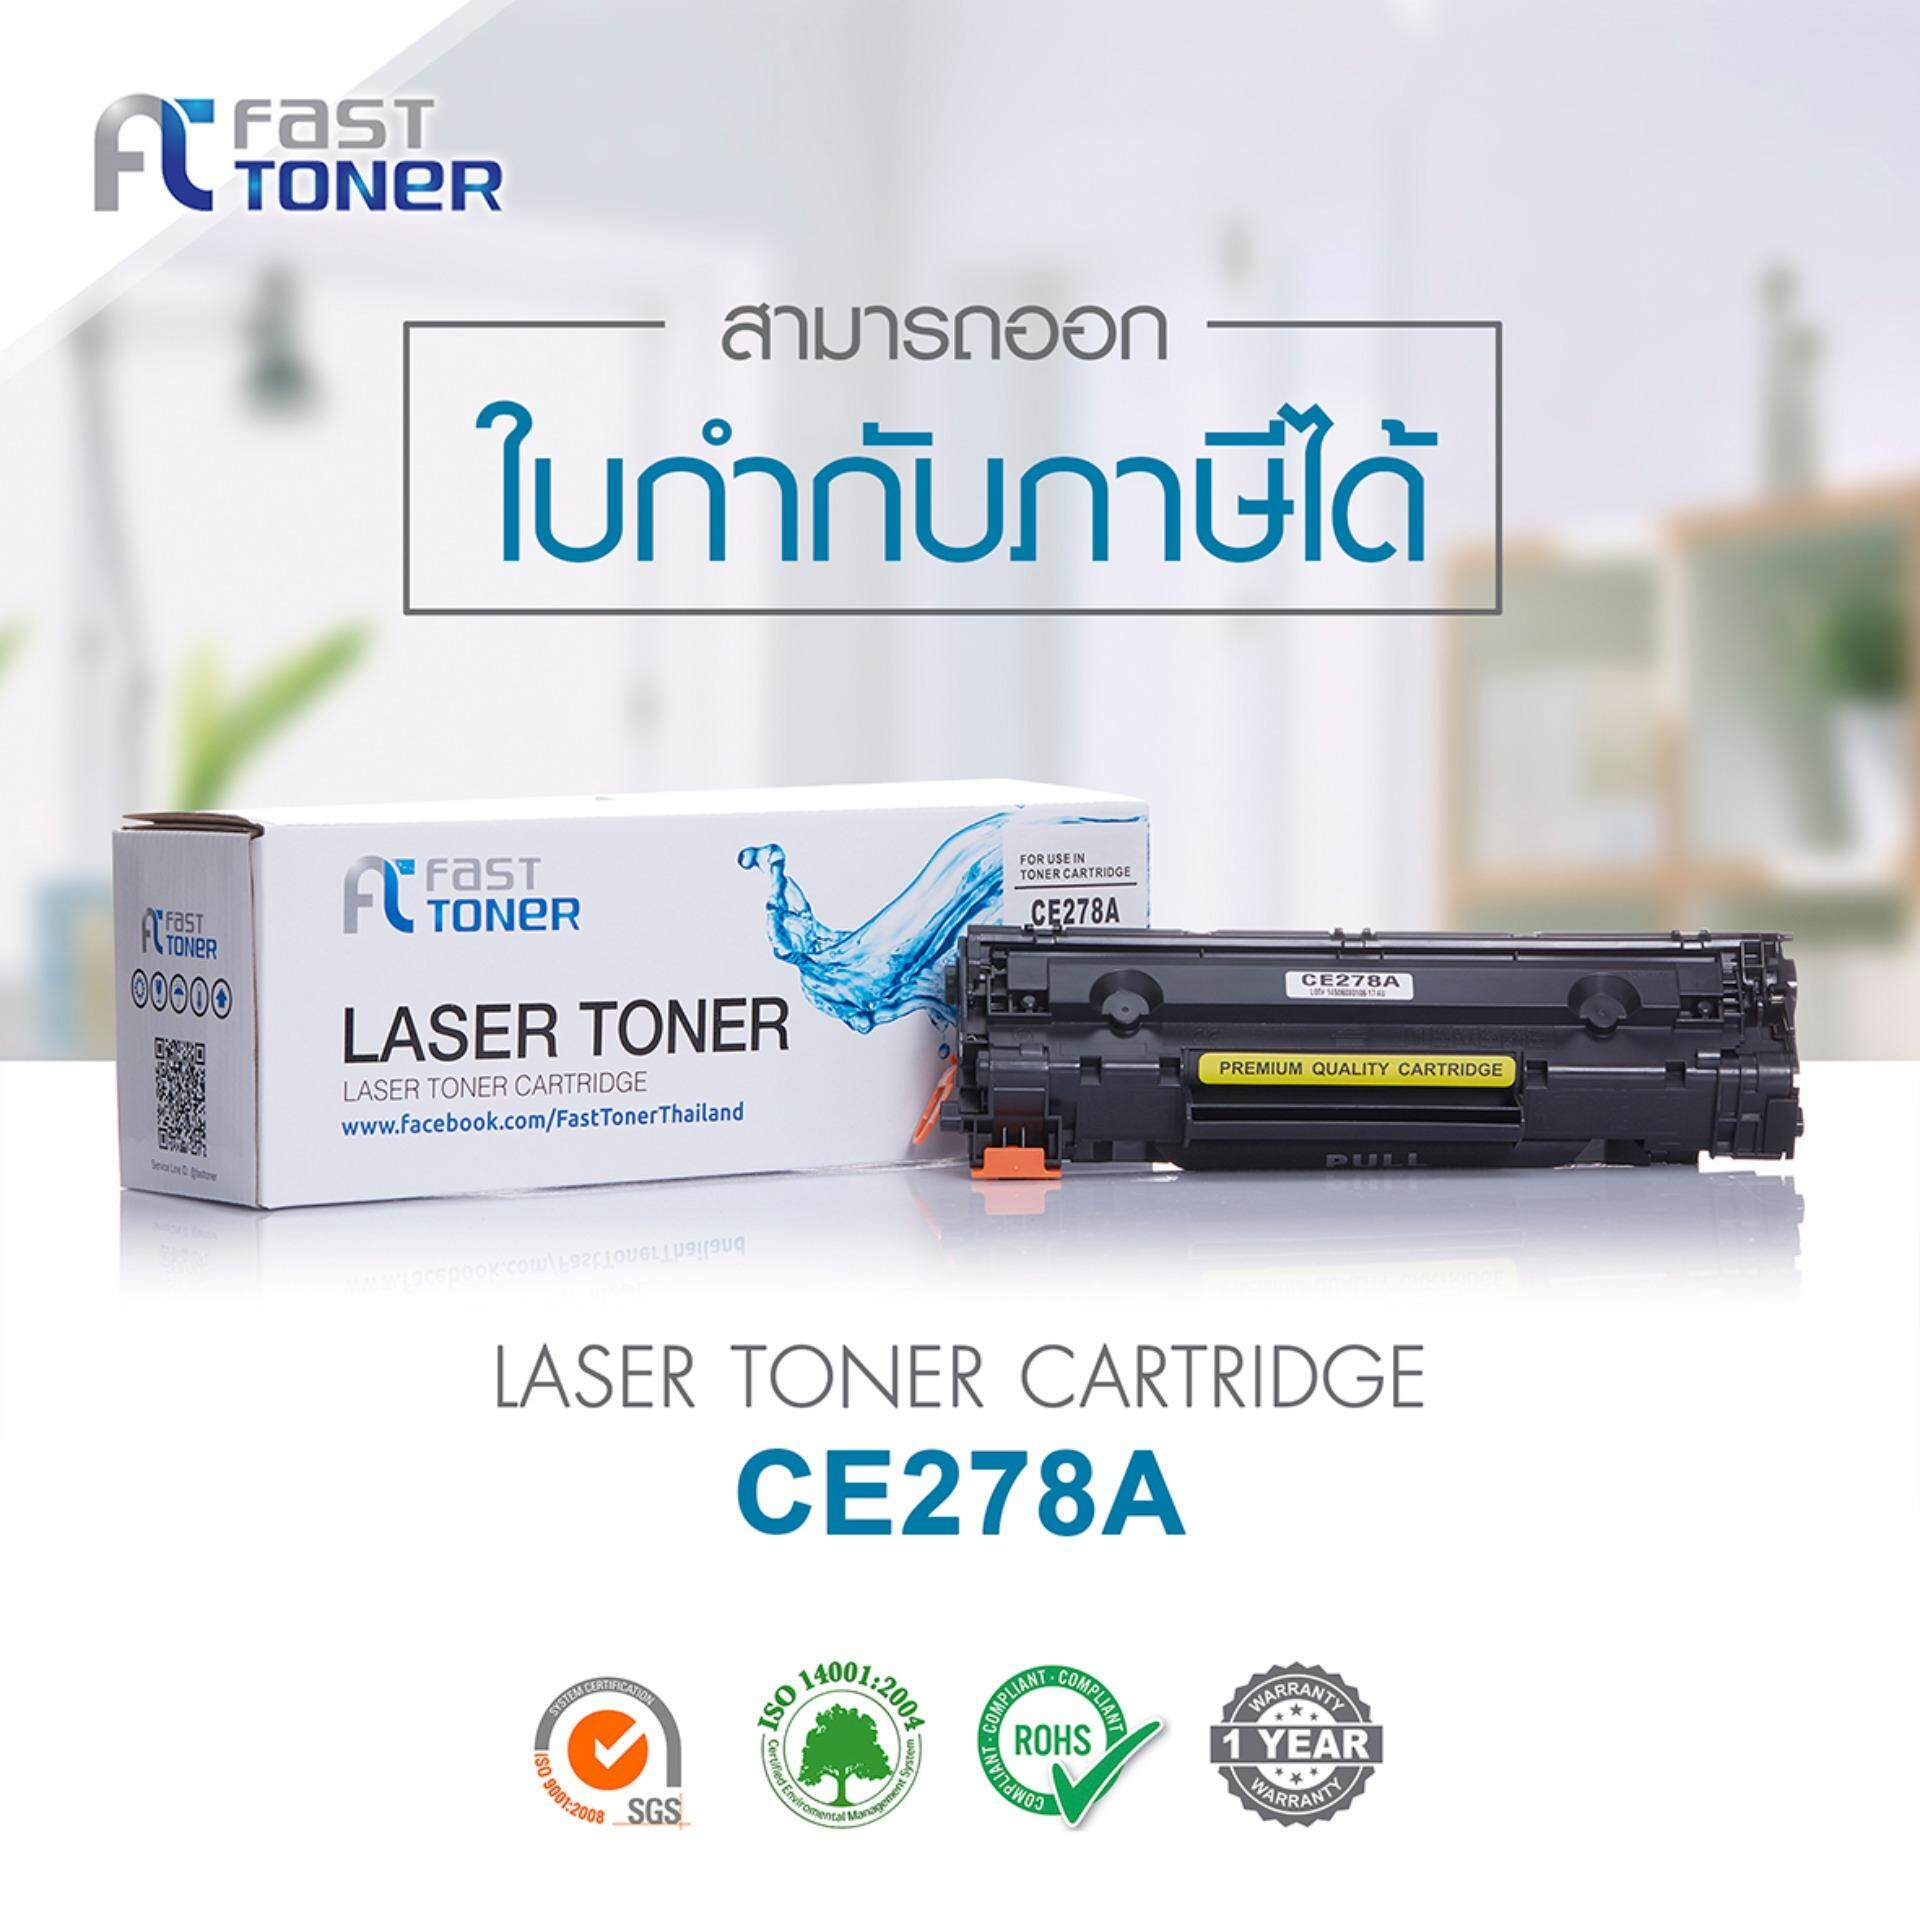 Fast Toner Cartridge HP CE278A (78A)(Black) (5 กล่อง) สำหรับ HP LaserJet Pro P1560/P1566/ P1600/ P1606dn/ M1536dnf